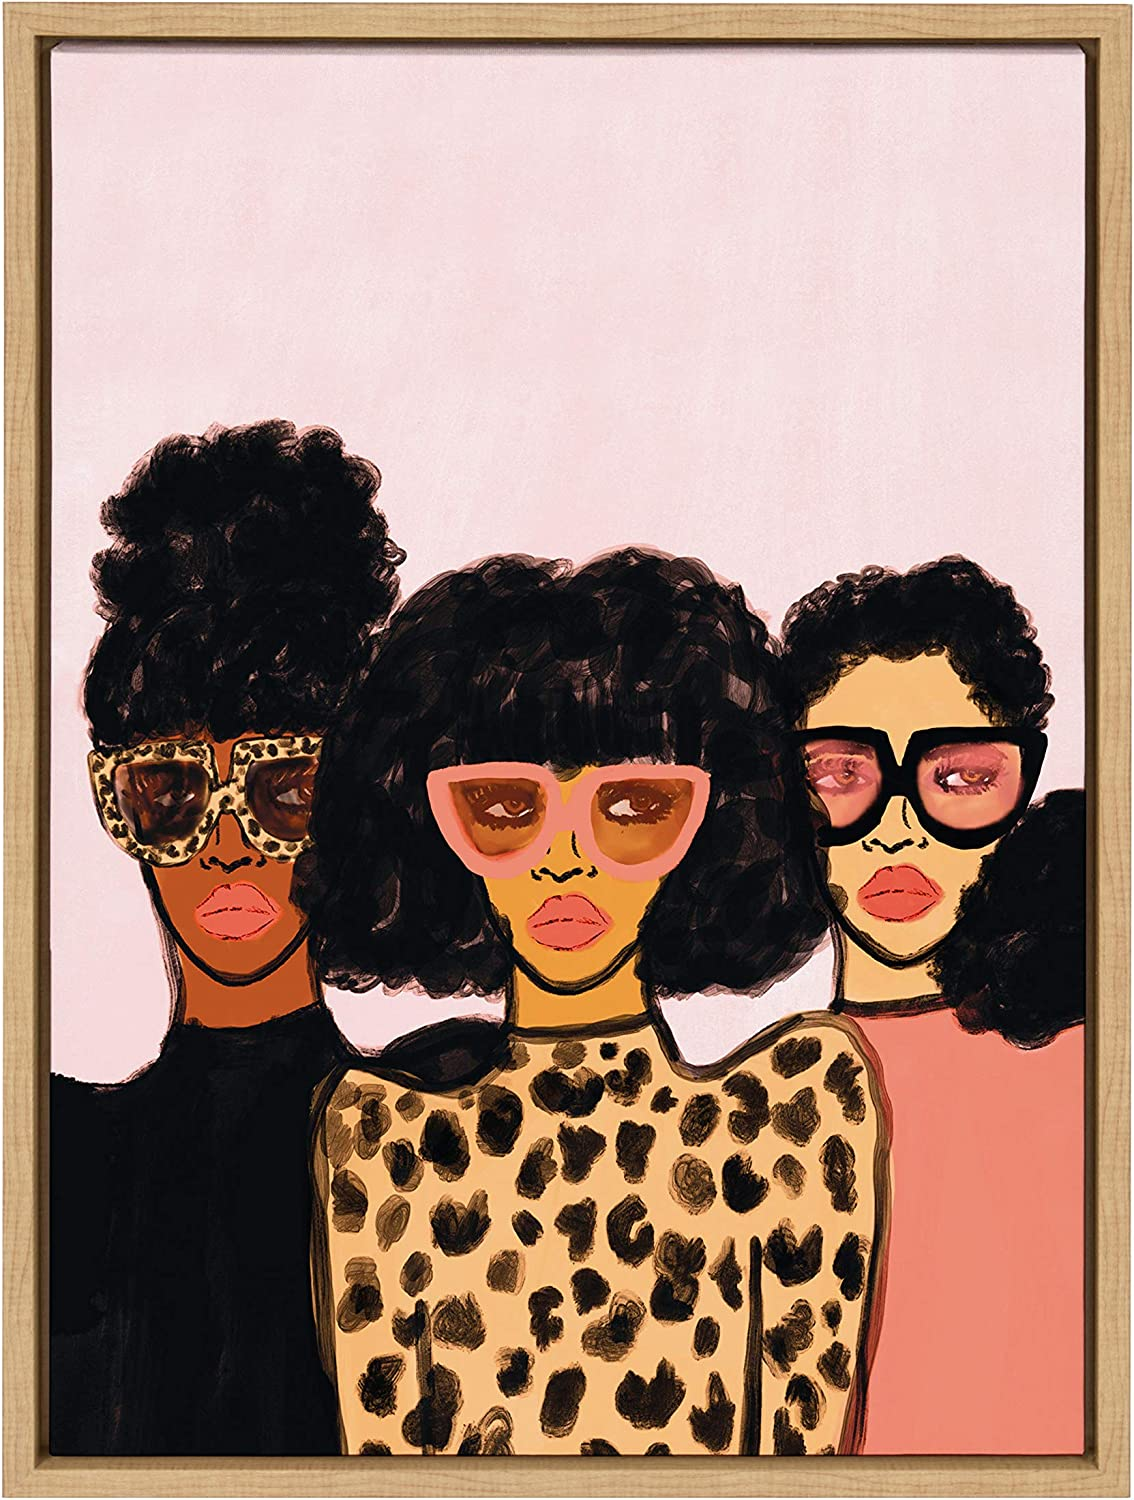 Kate and Laurel Sylvie Shade Squad Framed Canvas Wall Art by Kendra Dandy, 18x24 Natural, Chic Modern Art Decor